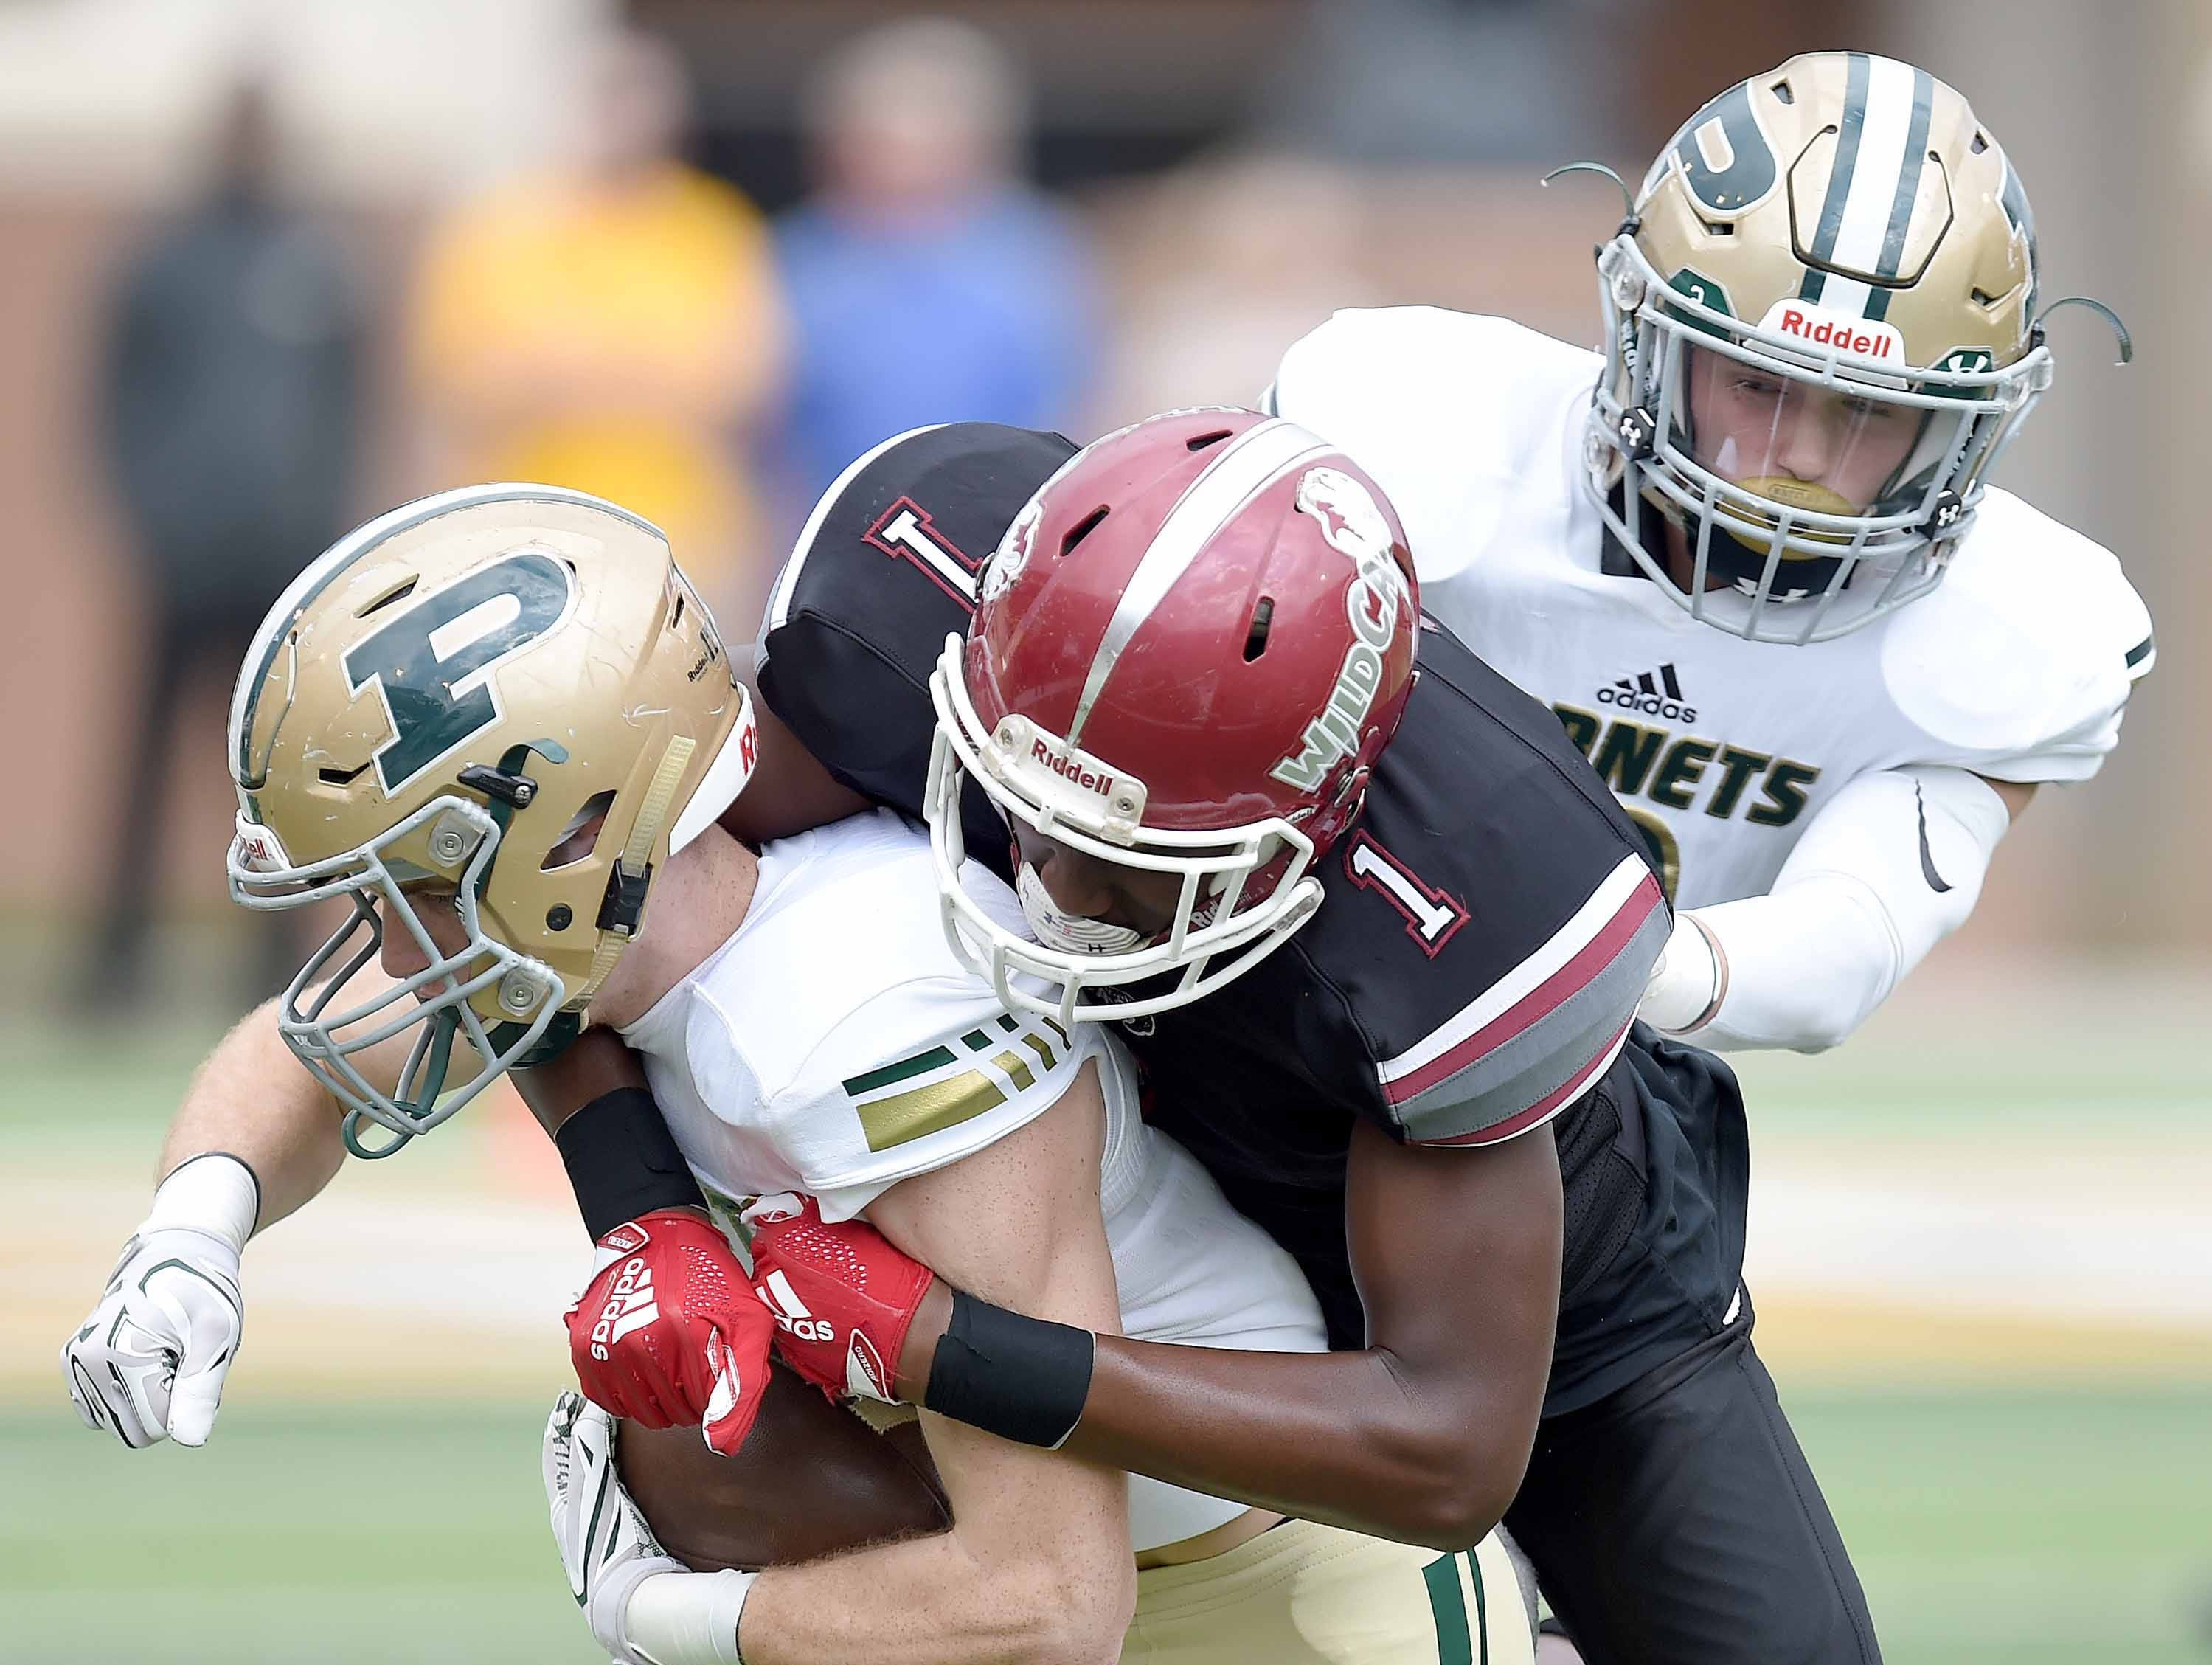 Poplarville's Canaan Ray (left) is tackled by Louisville's Alvius Haynes (1) after intercepting a pass on Saturday, December 1, 2018, in the MHSAA BlueCross BlueShield Gridiron Classic High School Football Championships in M.M. Roberts Stadium on the University of Southern Mississippi campus in Hattiesburg, Miss.